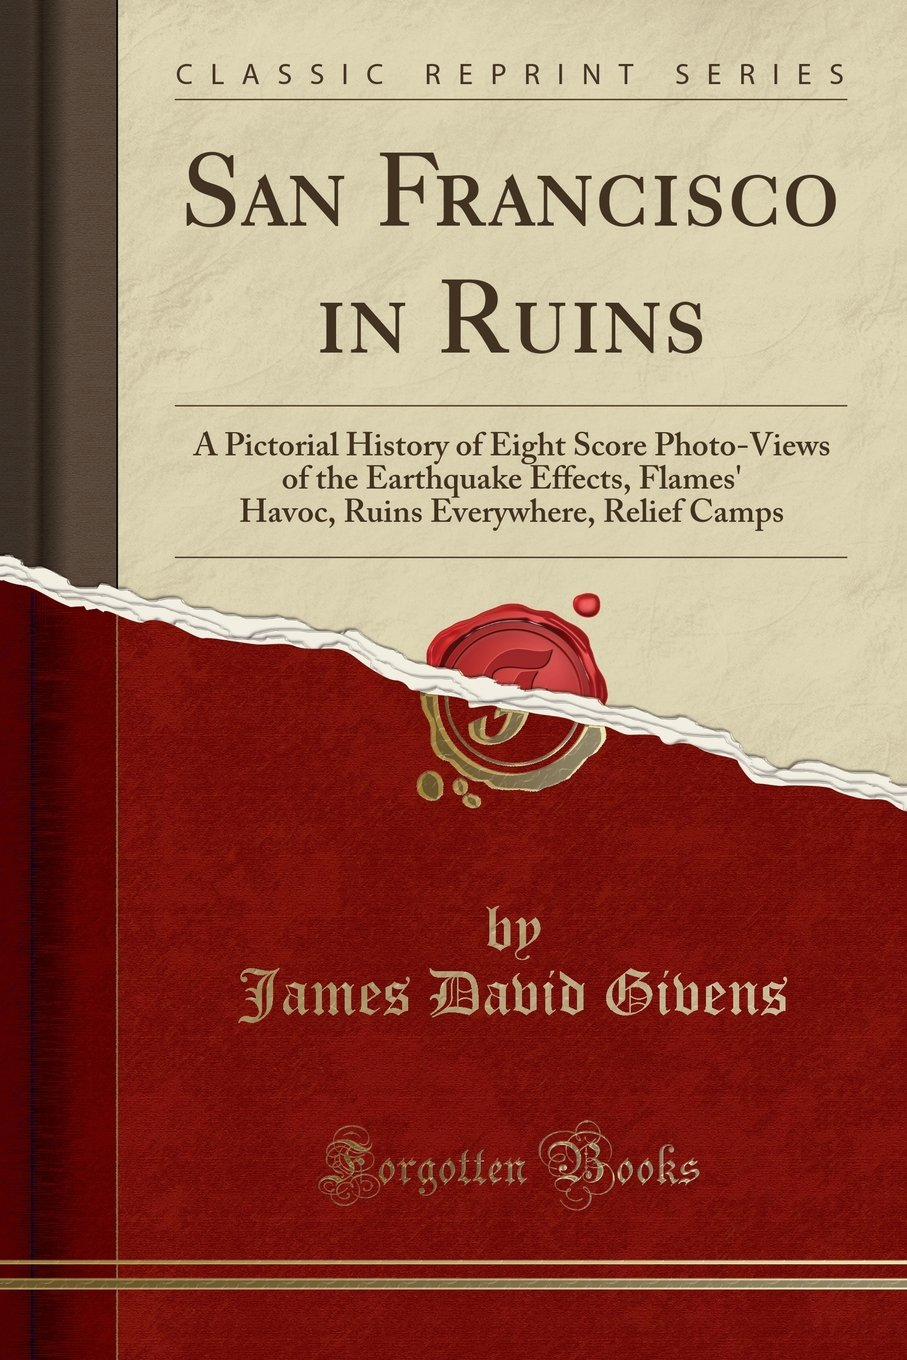 San Francisco in Ruins: A Pictorial History of Eight Score Photo-Views of the Earthquake Effects, Flames' Havoc, Ruins Everywhere, Relief Camps (Classic Reprint) ebook